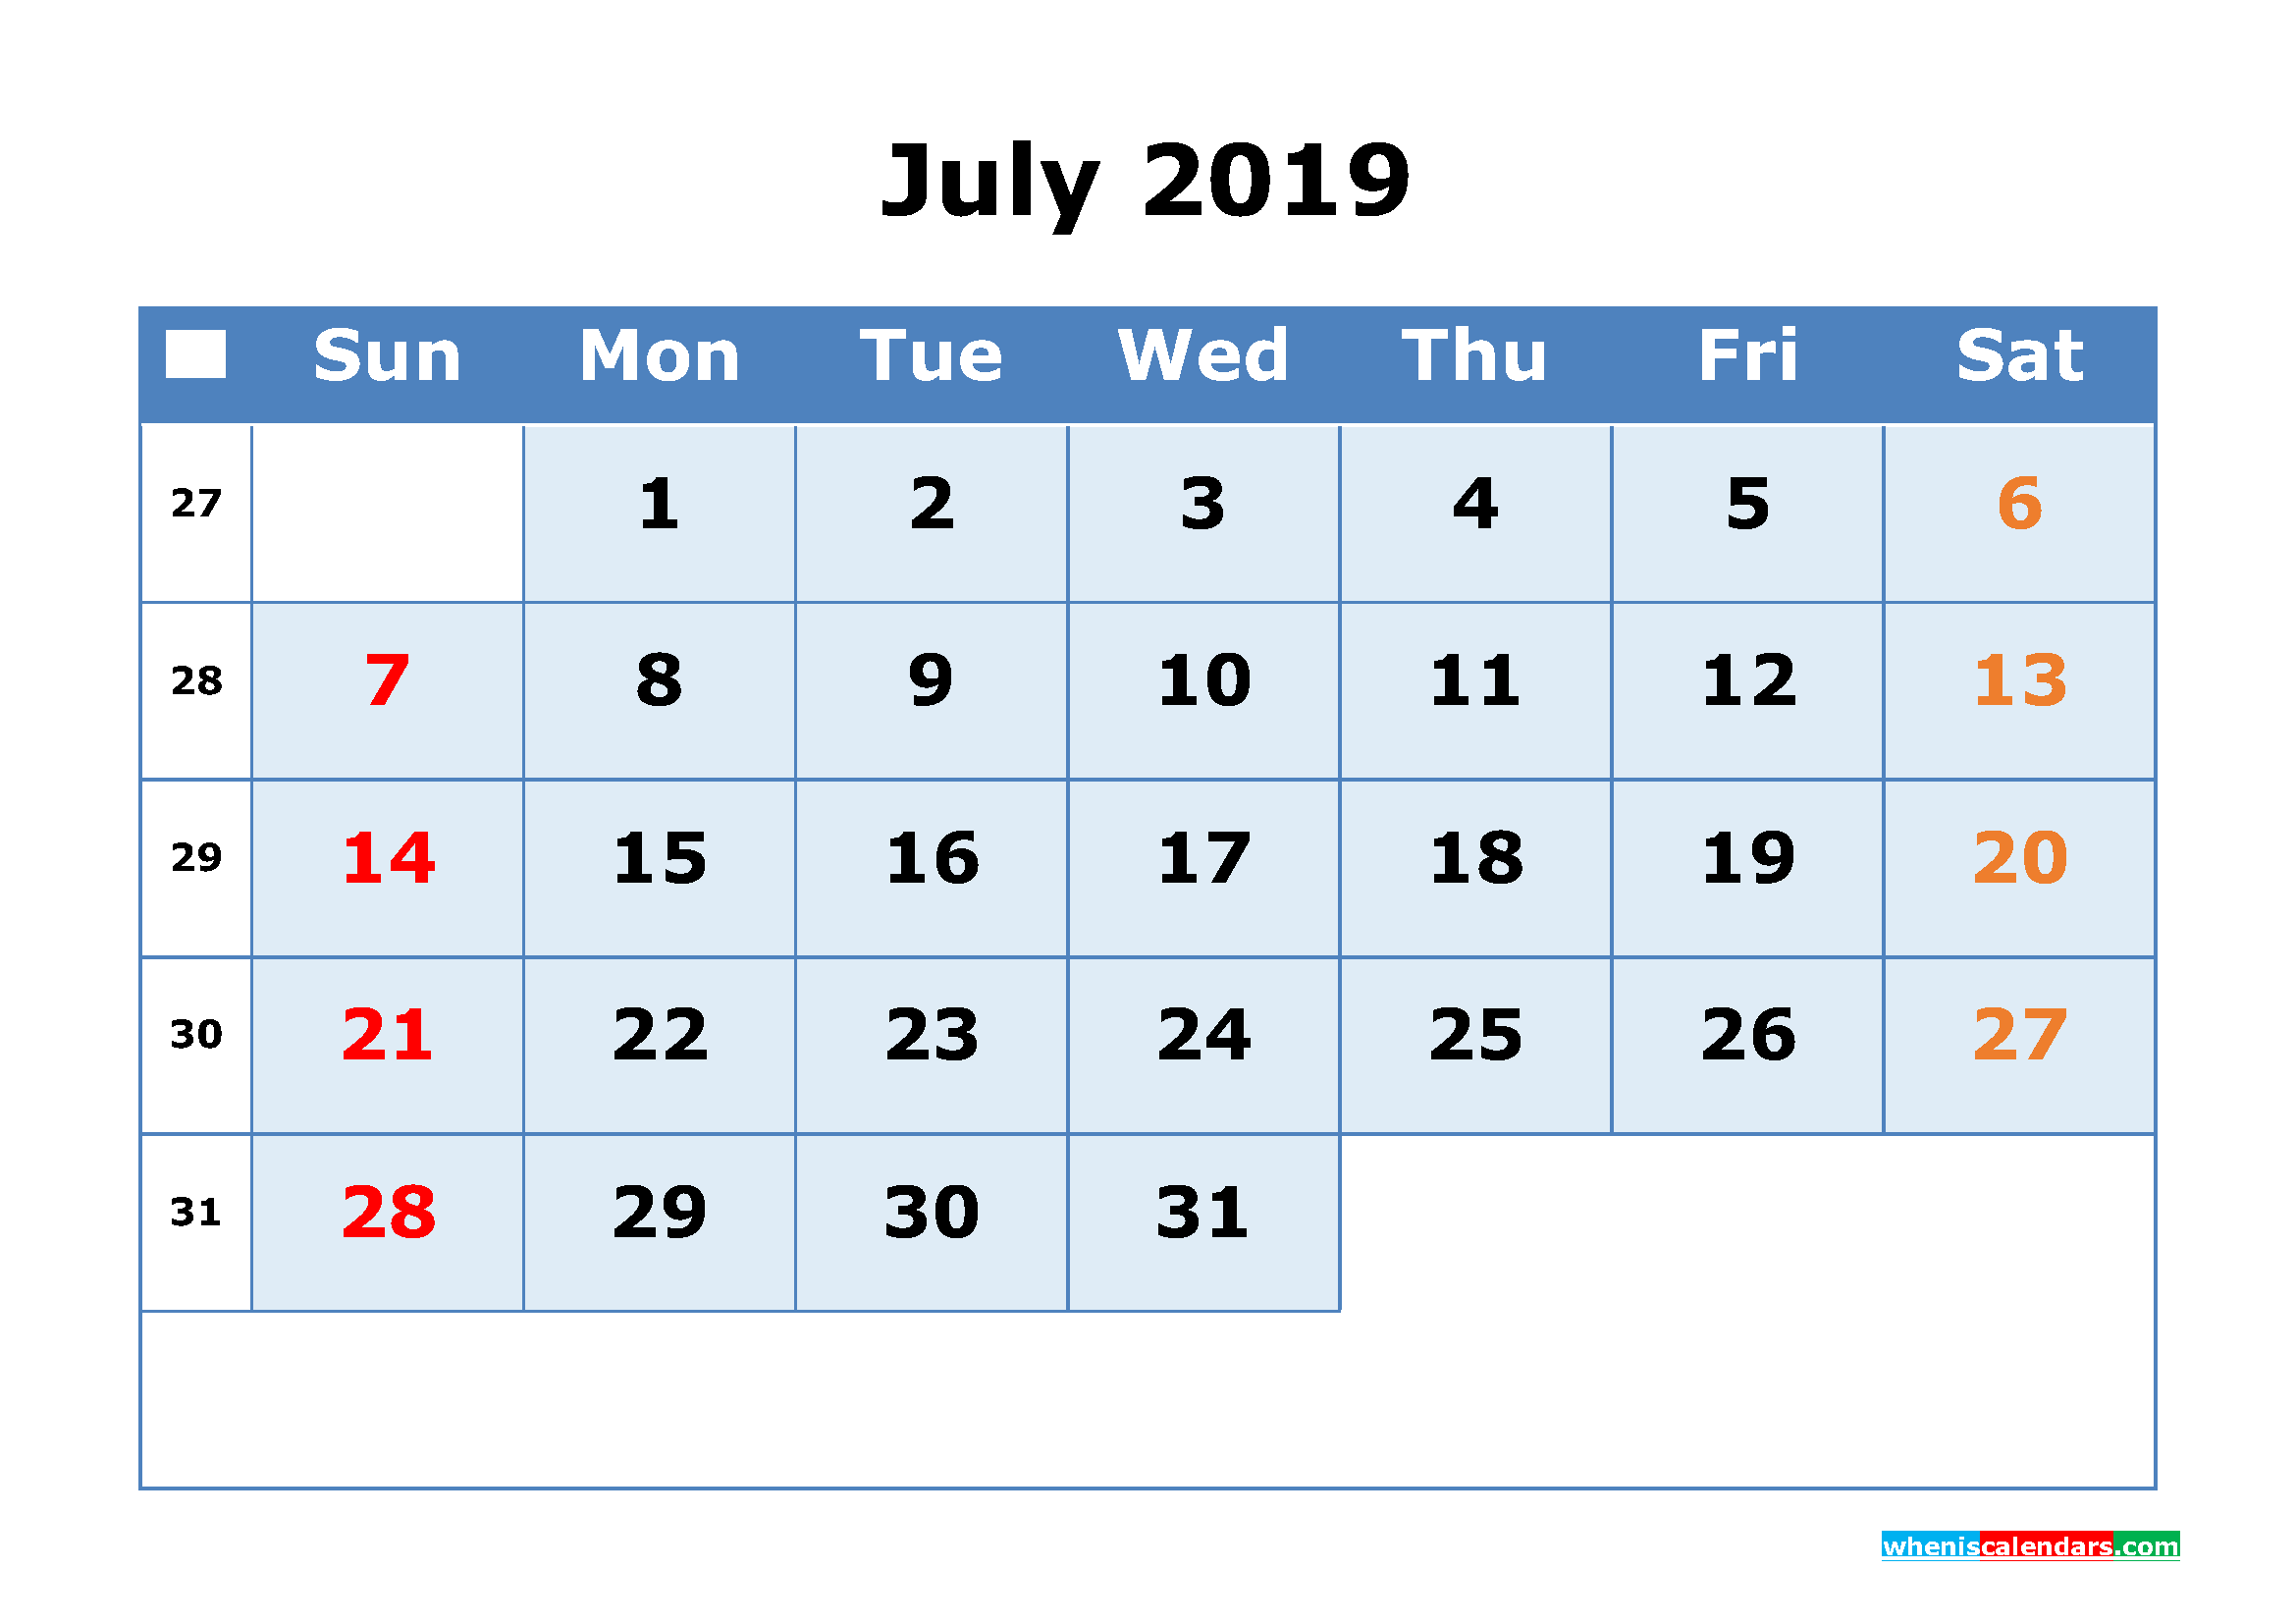 download july 2019 printable calendar